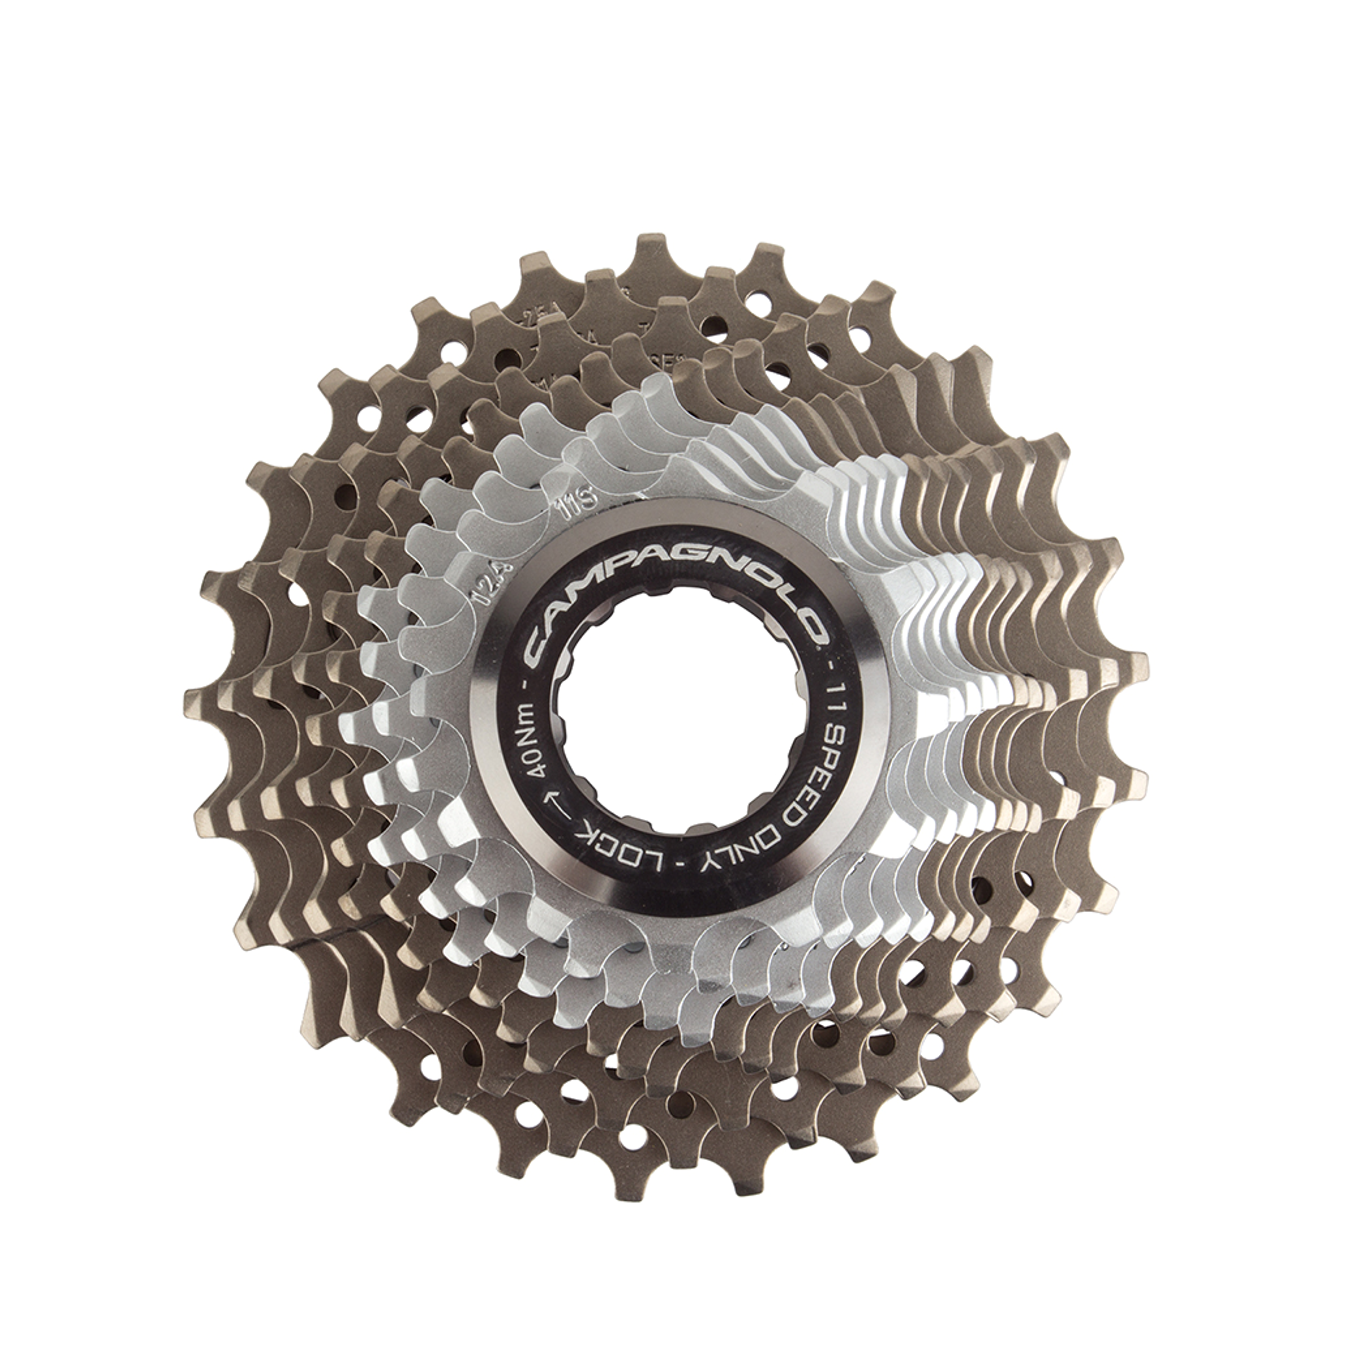 CAMPAGNOLO | Super record 11s 12-25 cassette sprocket